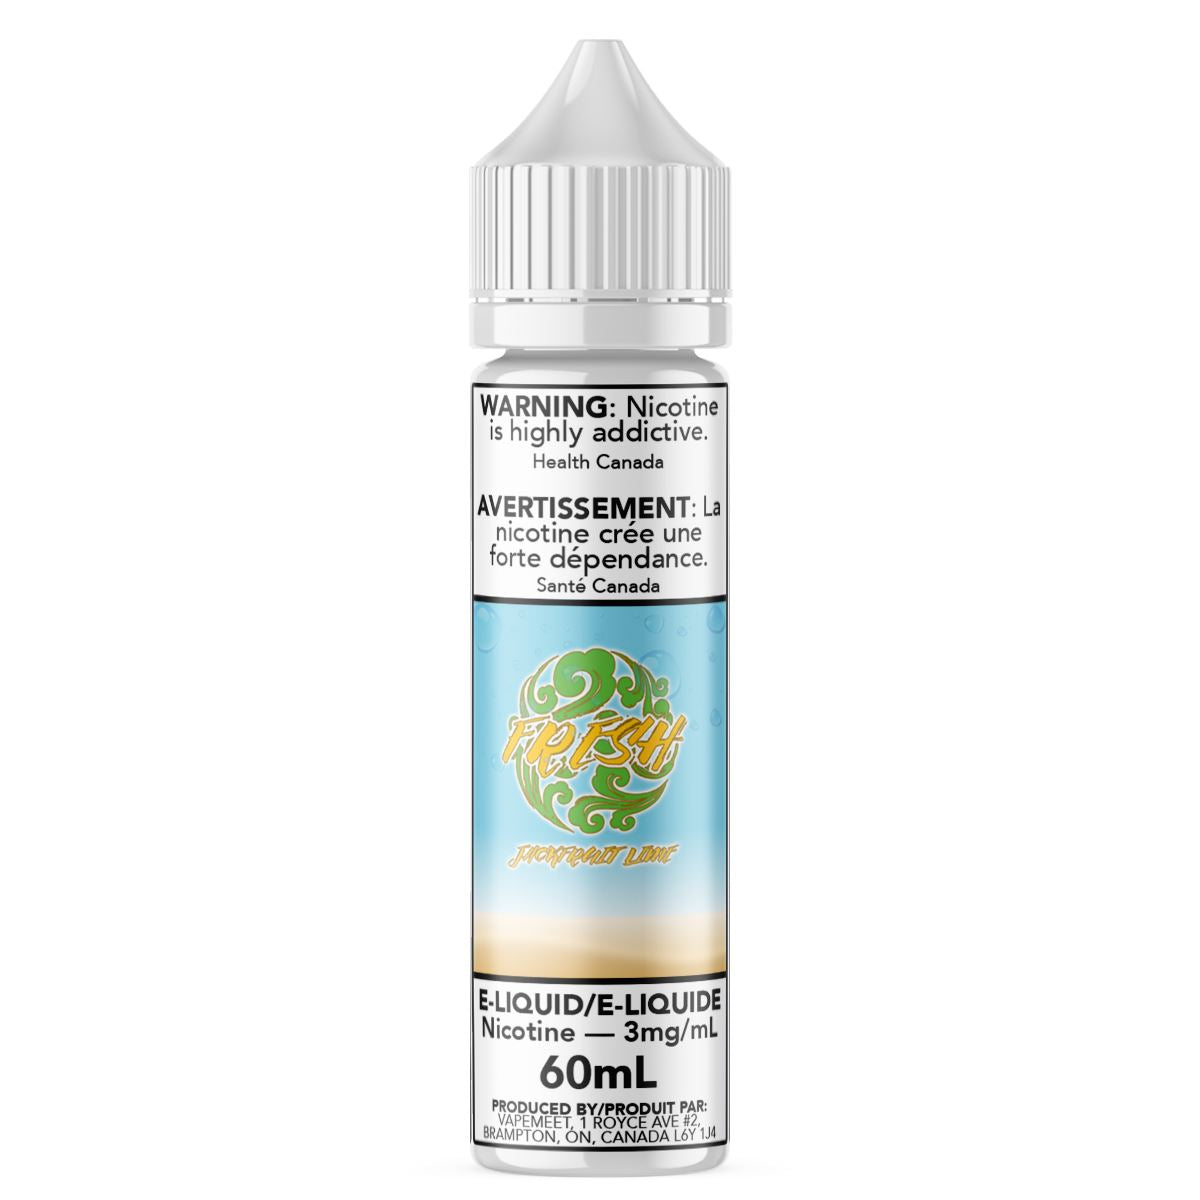 Fresh - Jackfruit Lime E-Liquid Fresh 60mL 0 mg/mL